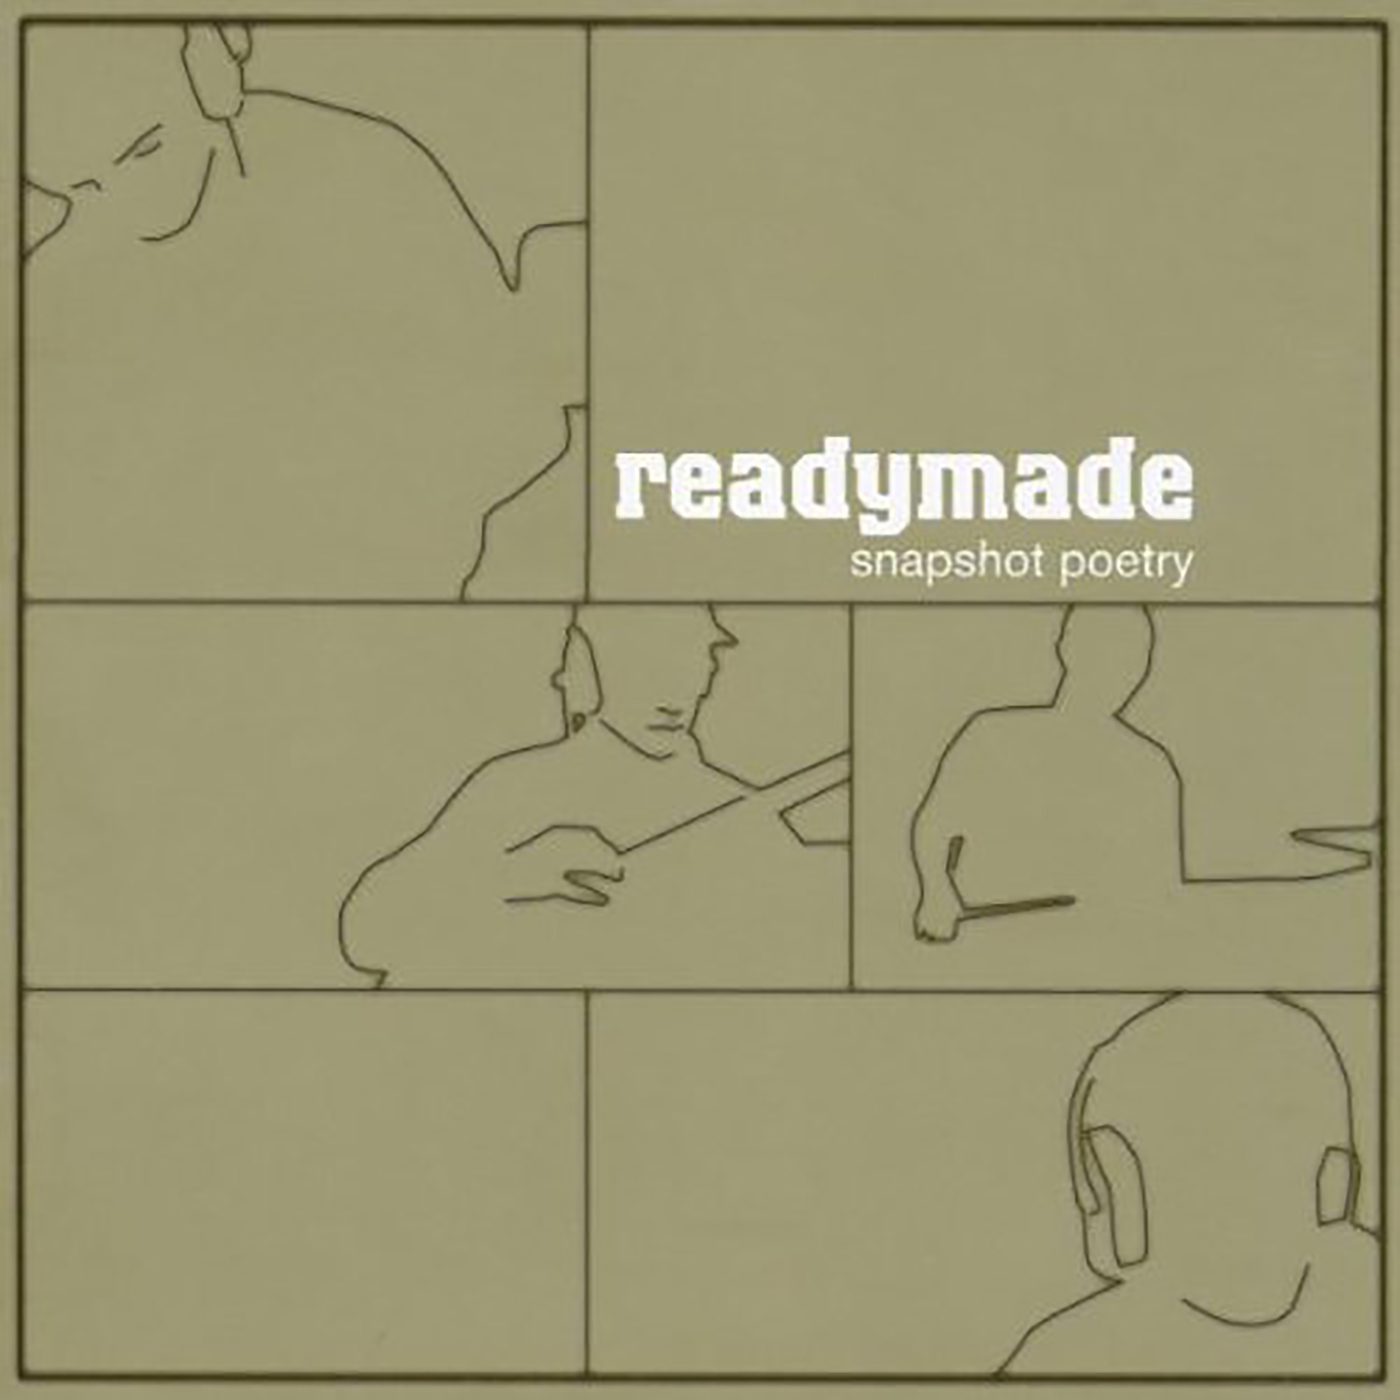 Snapshot Poetry - Readymade